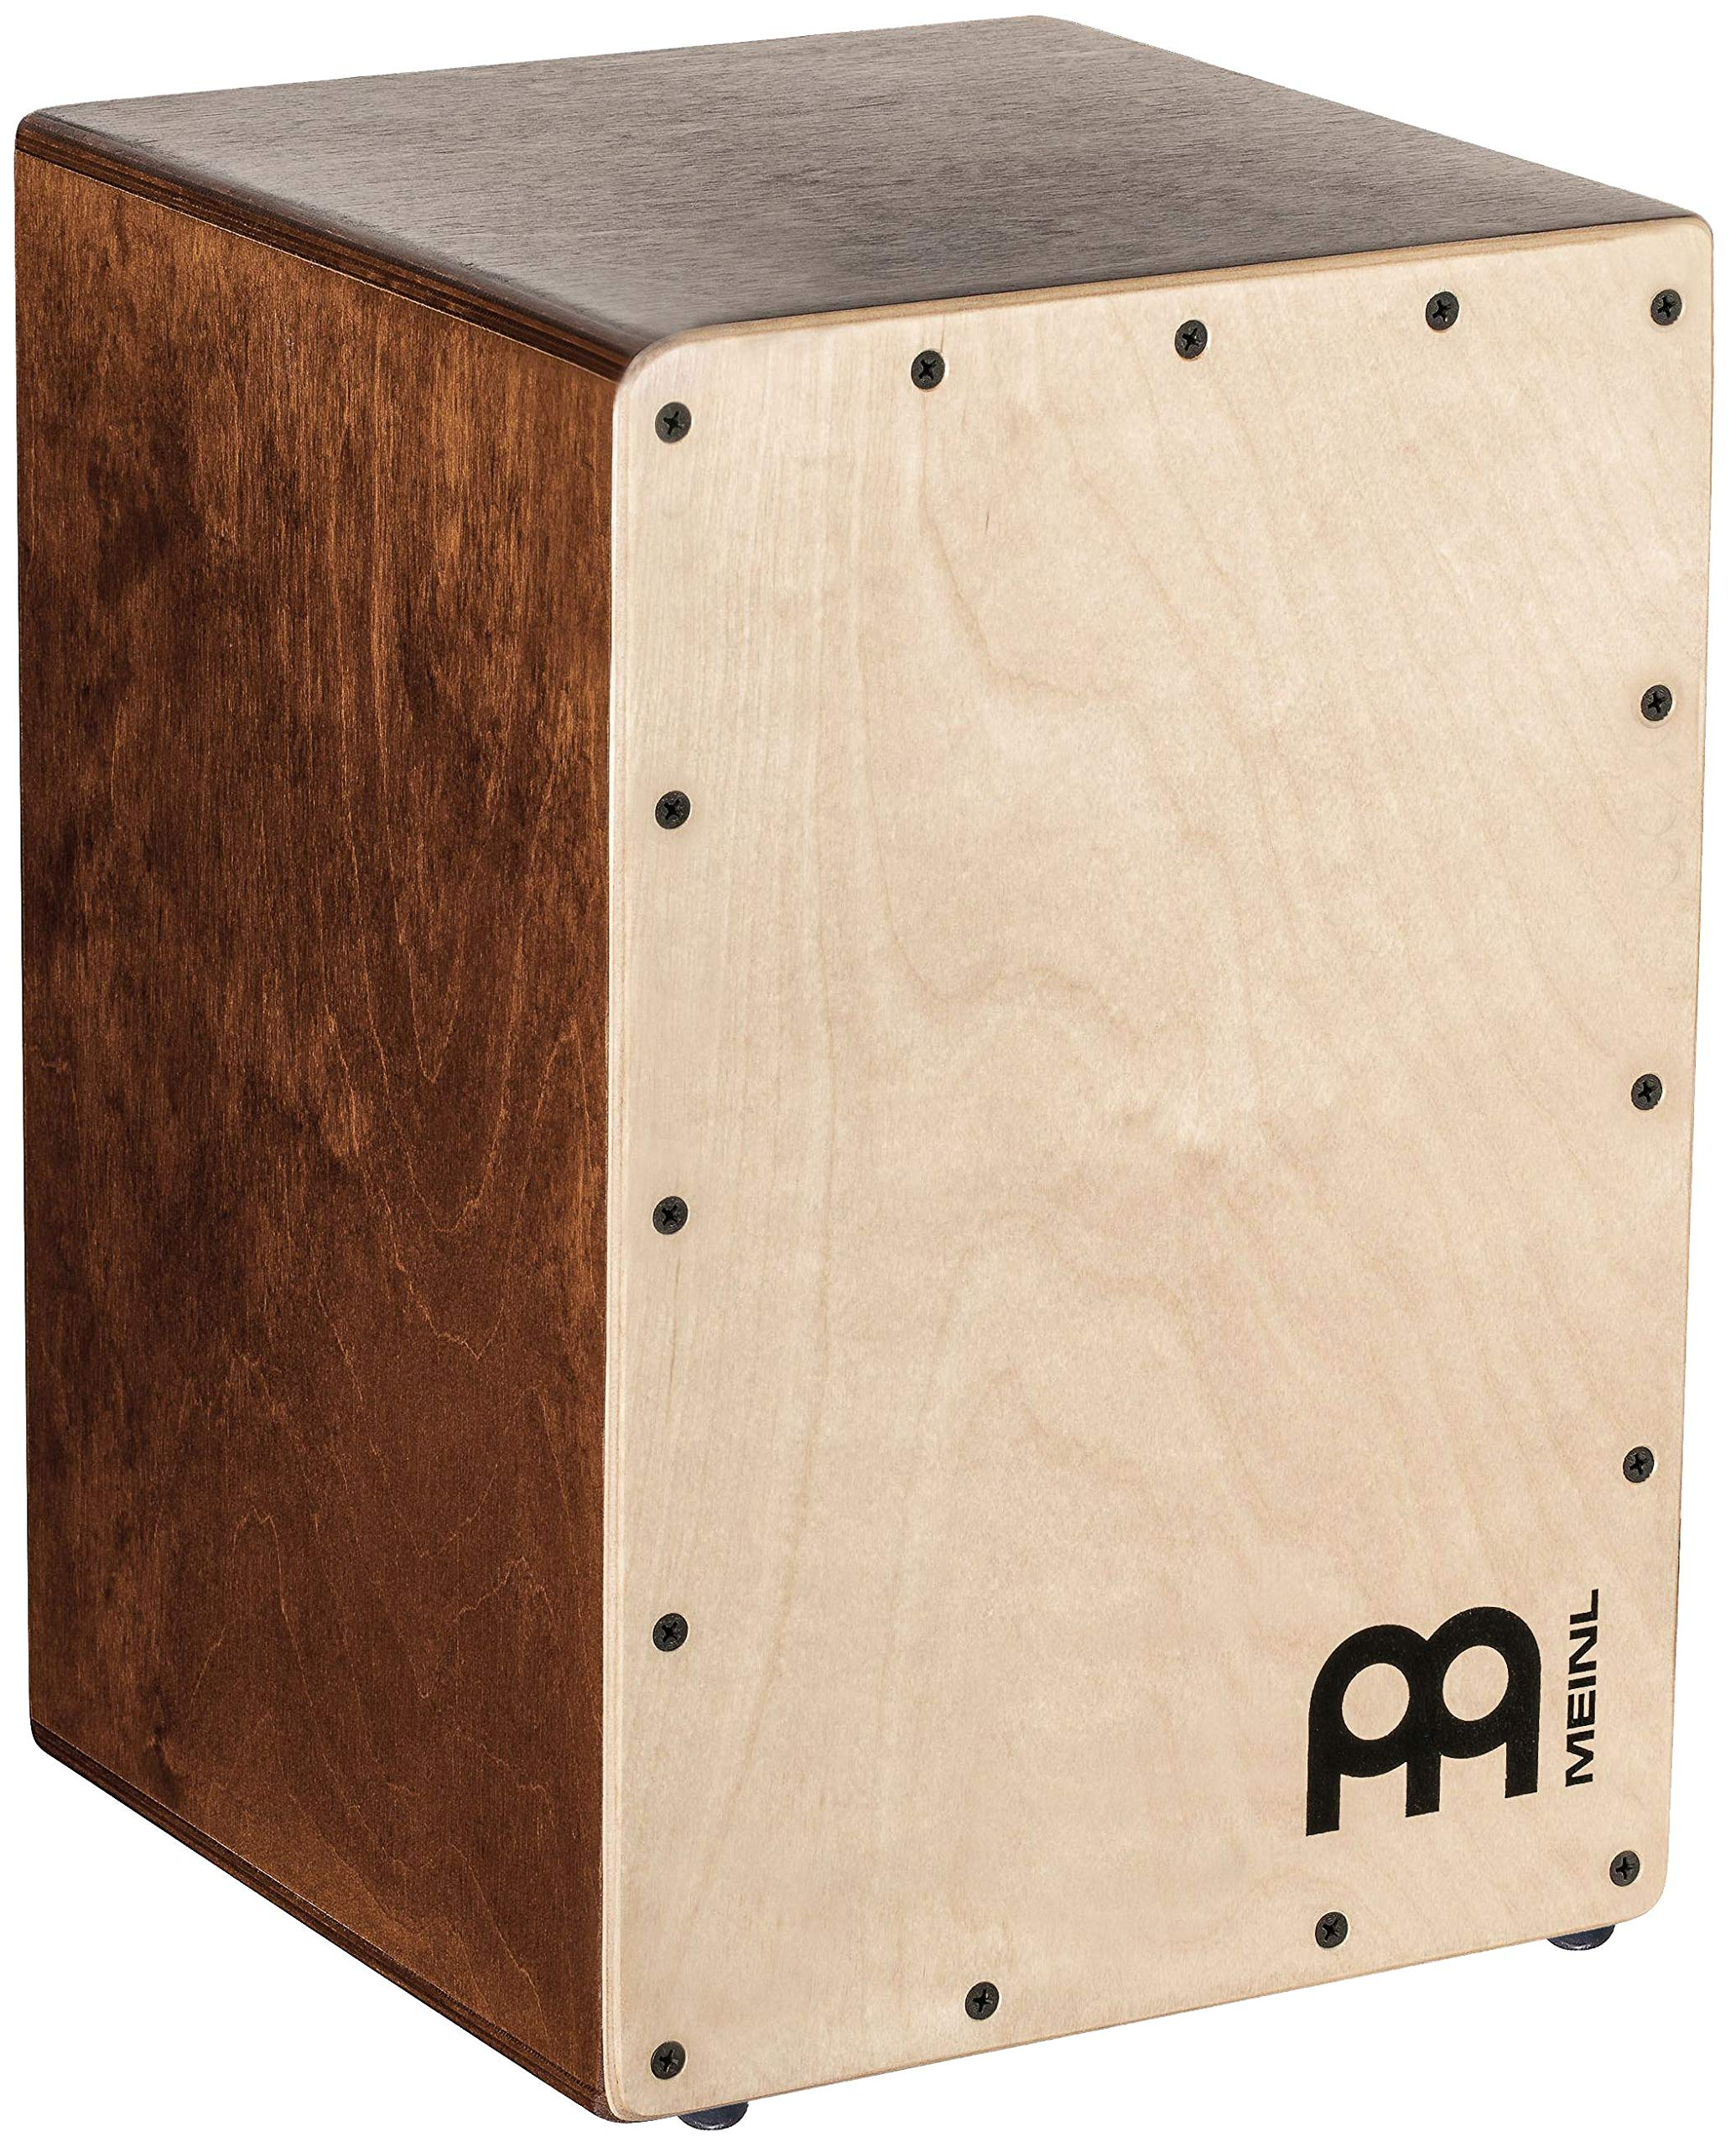 Meinl Cajon Box Drum with Internal Snares - MADE IN EUROPE - Baltic Birch Wood Compact Size, 2-YEAR WARRANTY, JC50LBNT) by Meinl